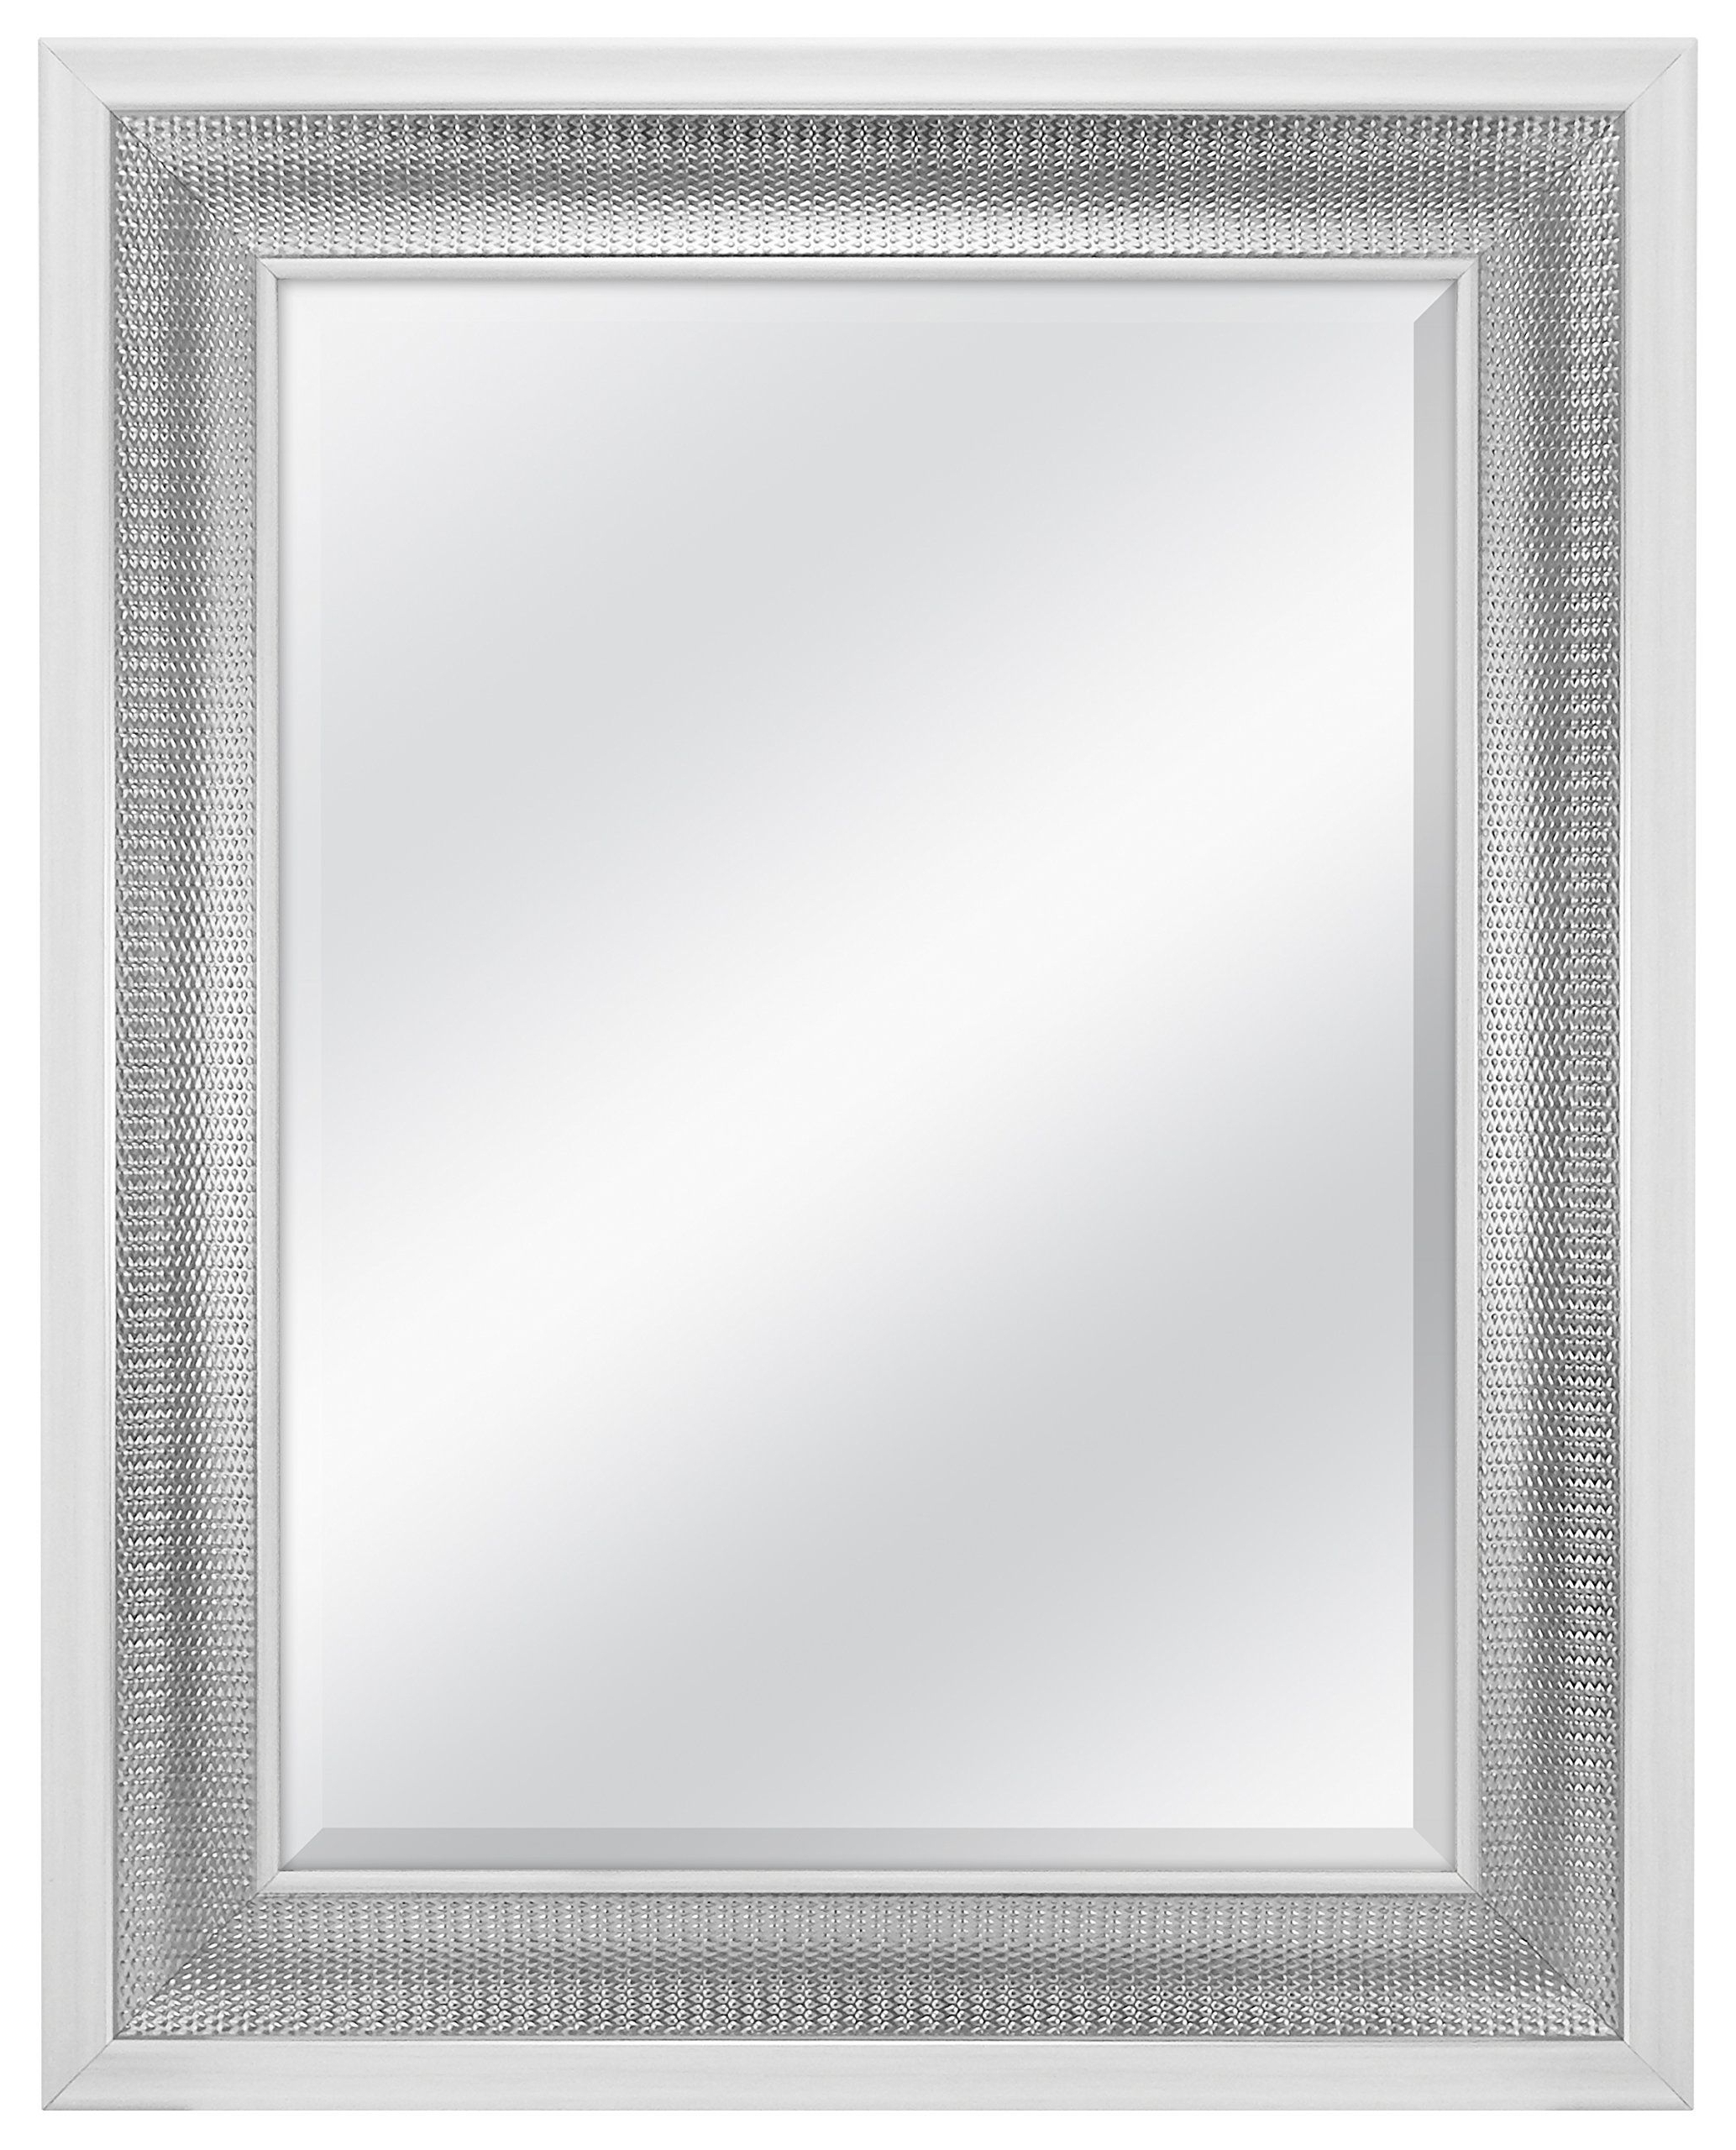 Current Farmhouse Woodgrain And Leaf Accent Wall Mirrors With Regard To Mcs 18x24 Inch Beveled Wall Mirror White & Woven, Silver ( (View 12 of 20)